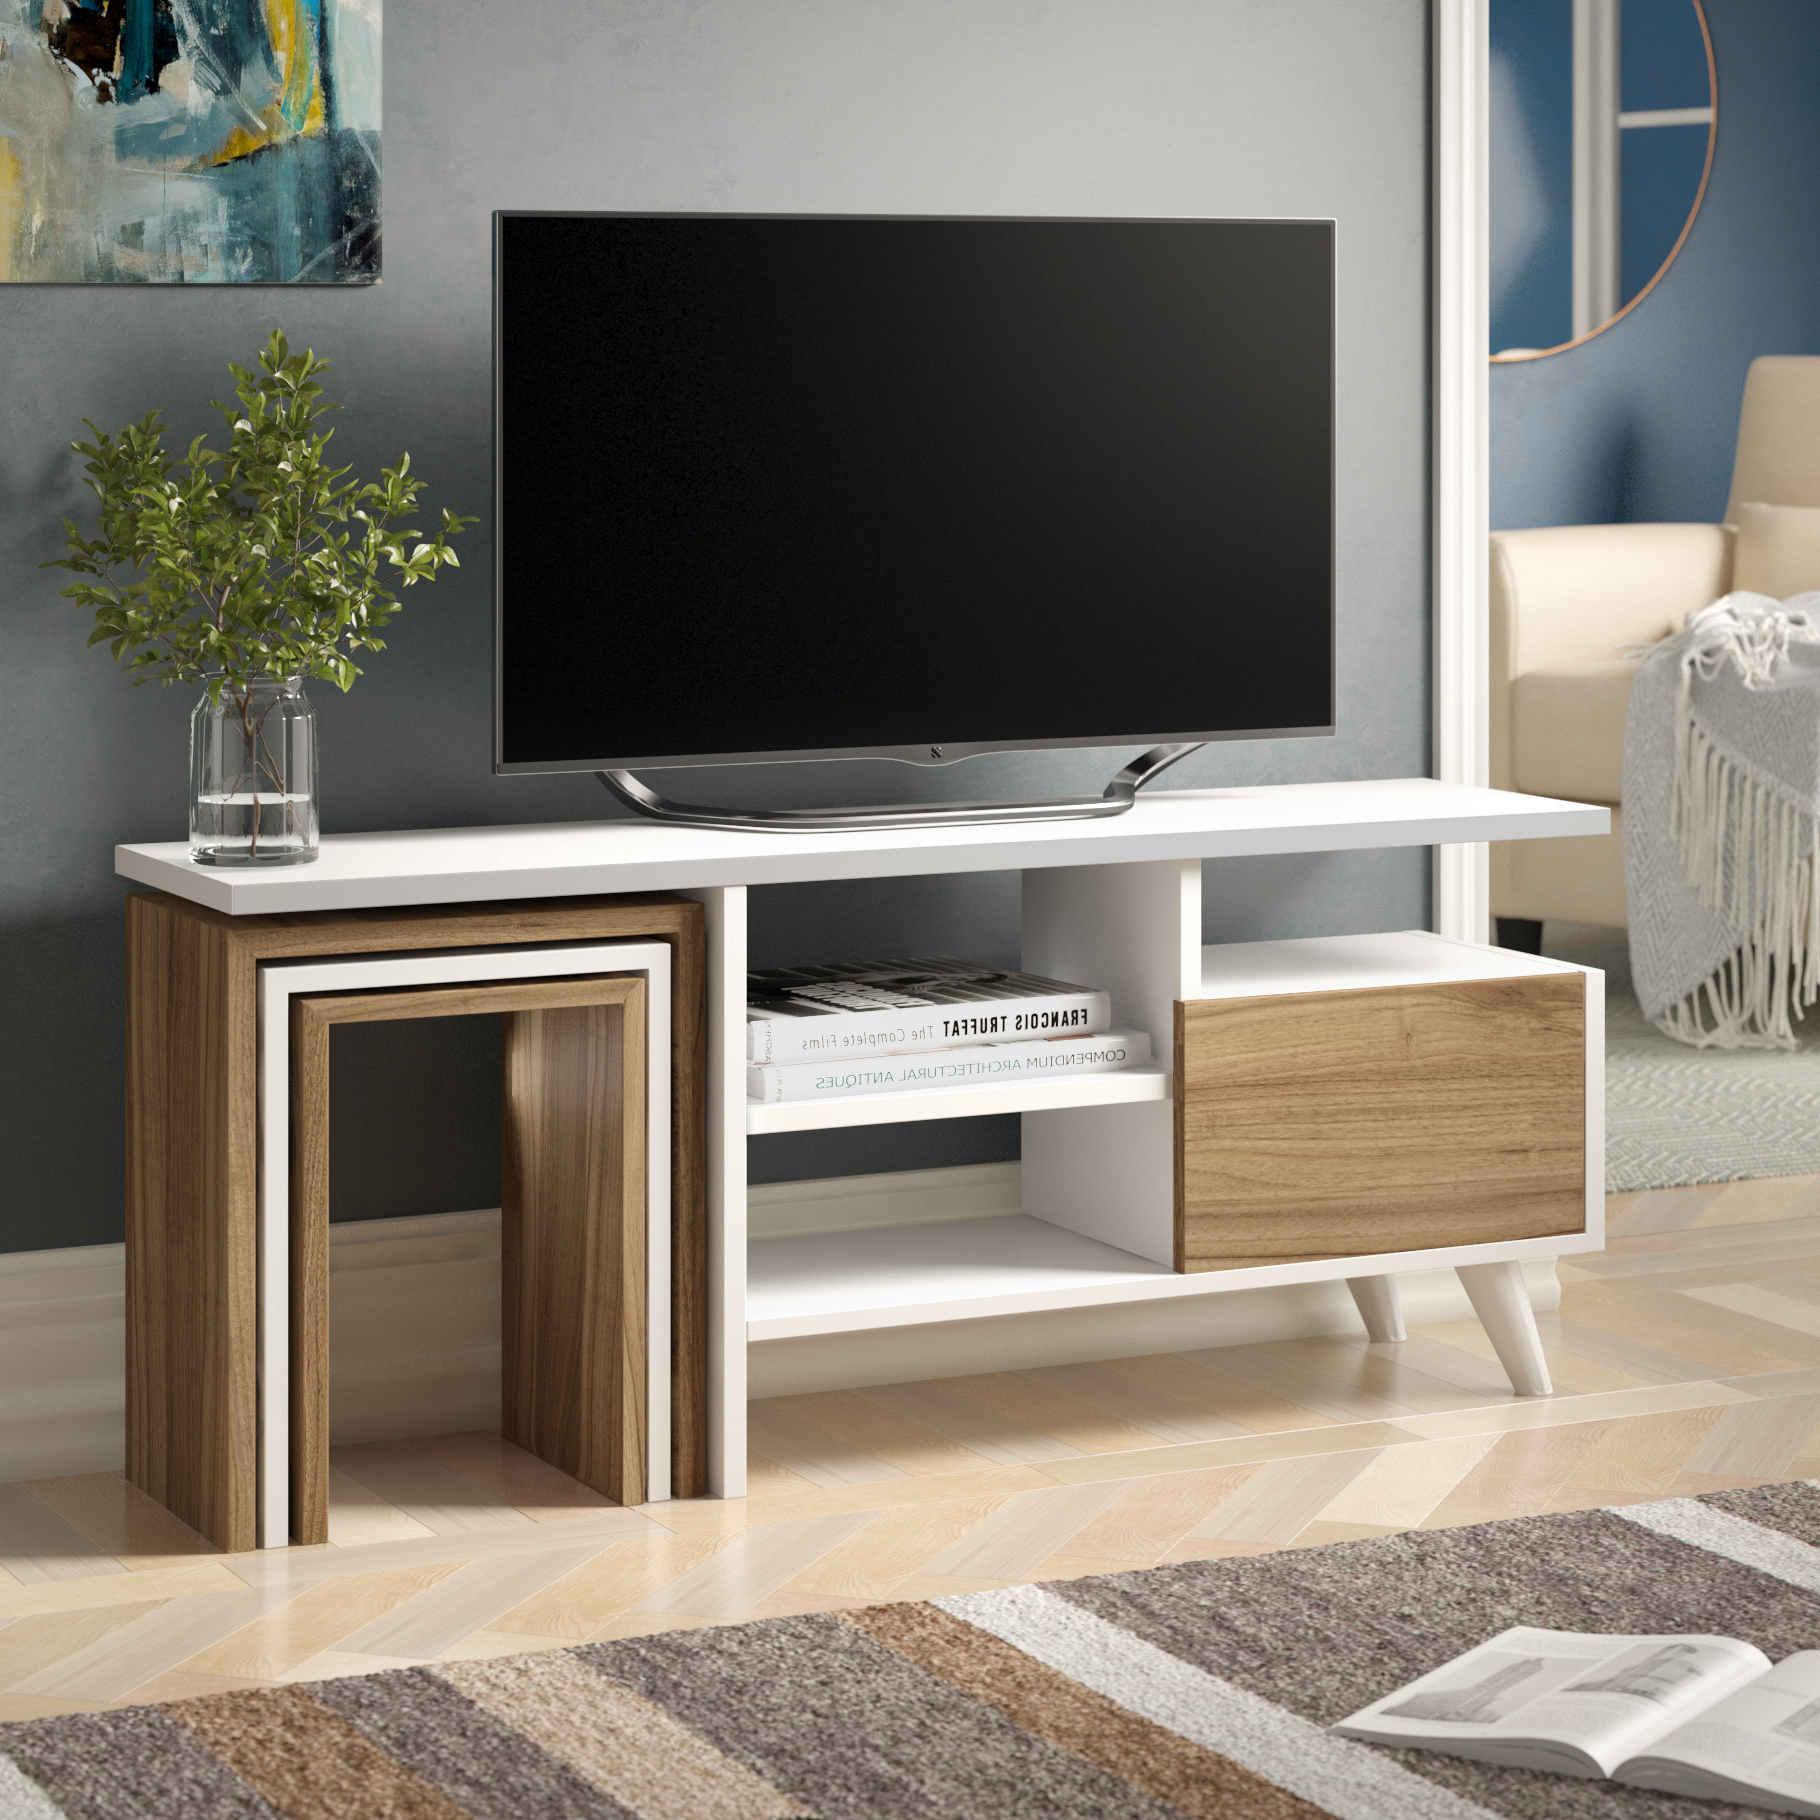 Tv Stand With Side Tables | Wayfair.co (View 18 of 20)